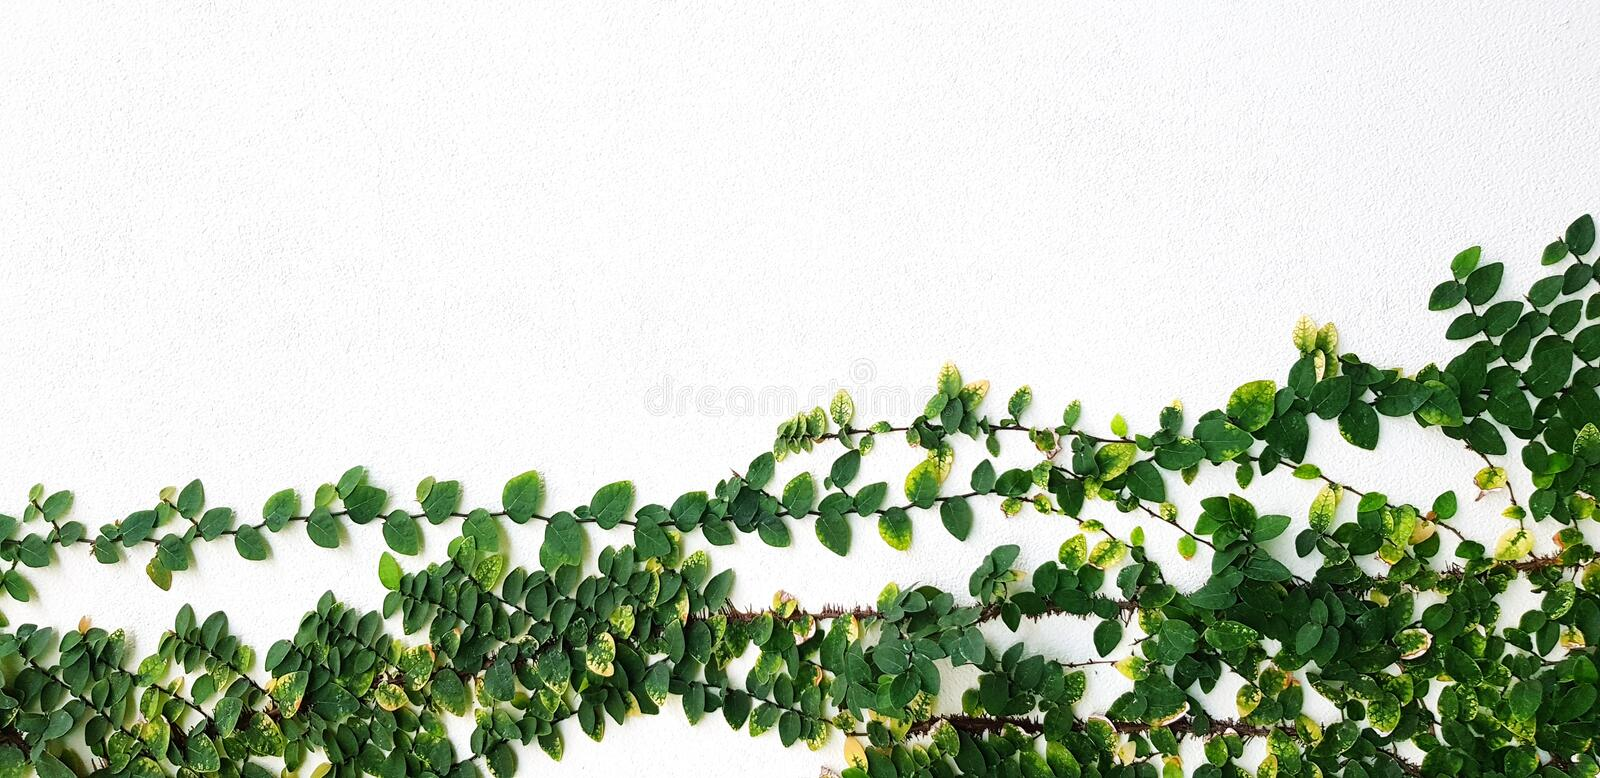 Vine or creeping plant growth isolated on white concrete wall background with above copy space. Nature plant and Background concept royalty free stock photography